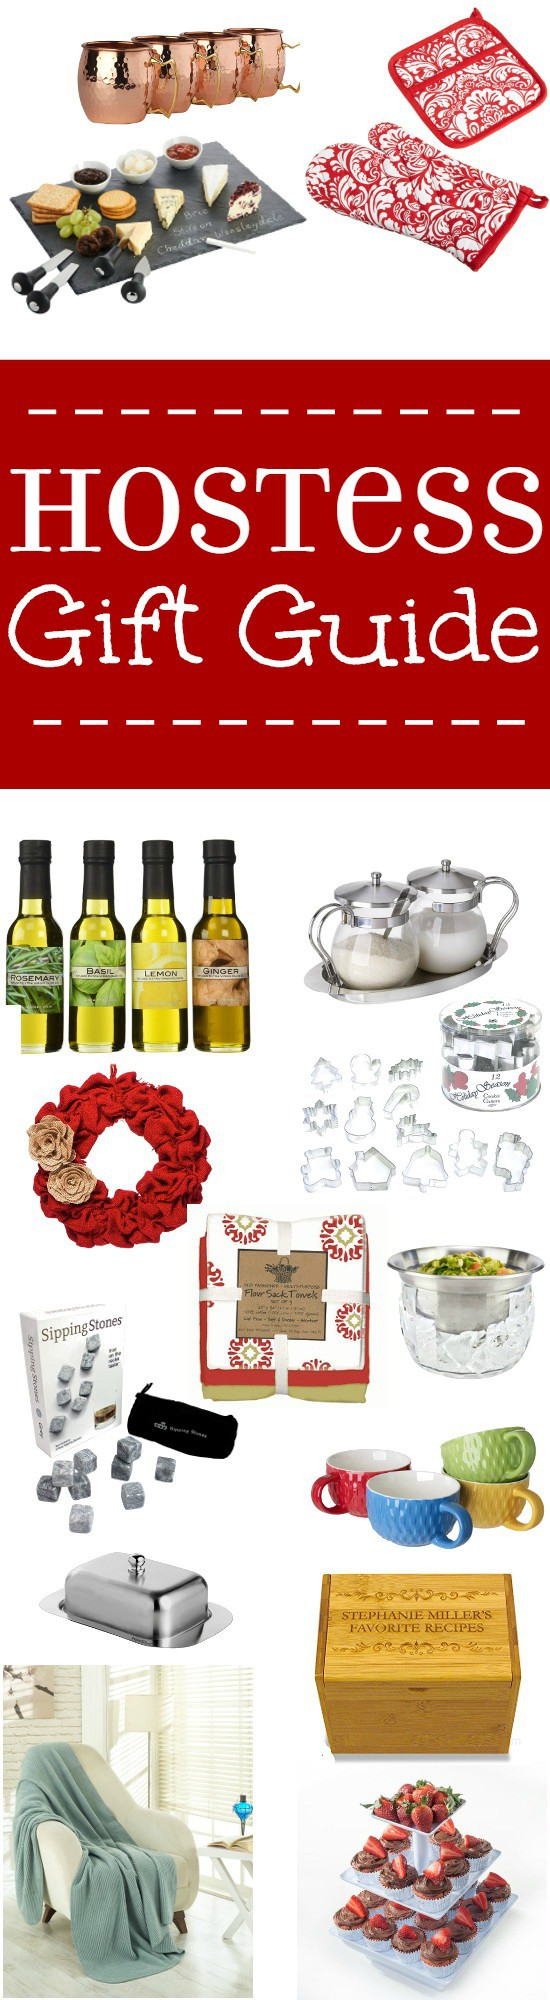 Hostess gift guide the gracious wife for Holiday party gift ideas for the hostess